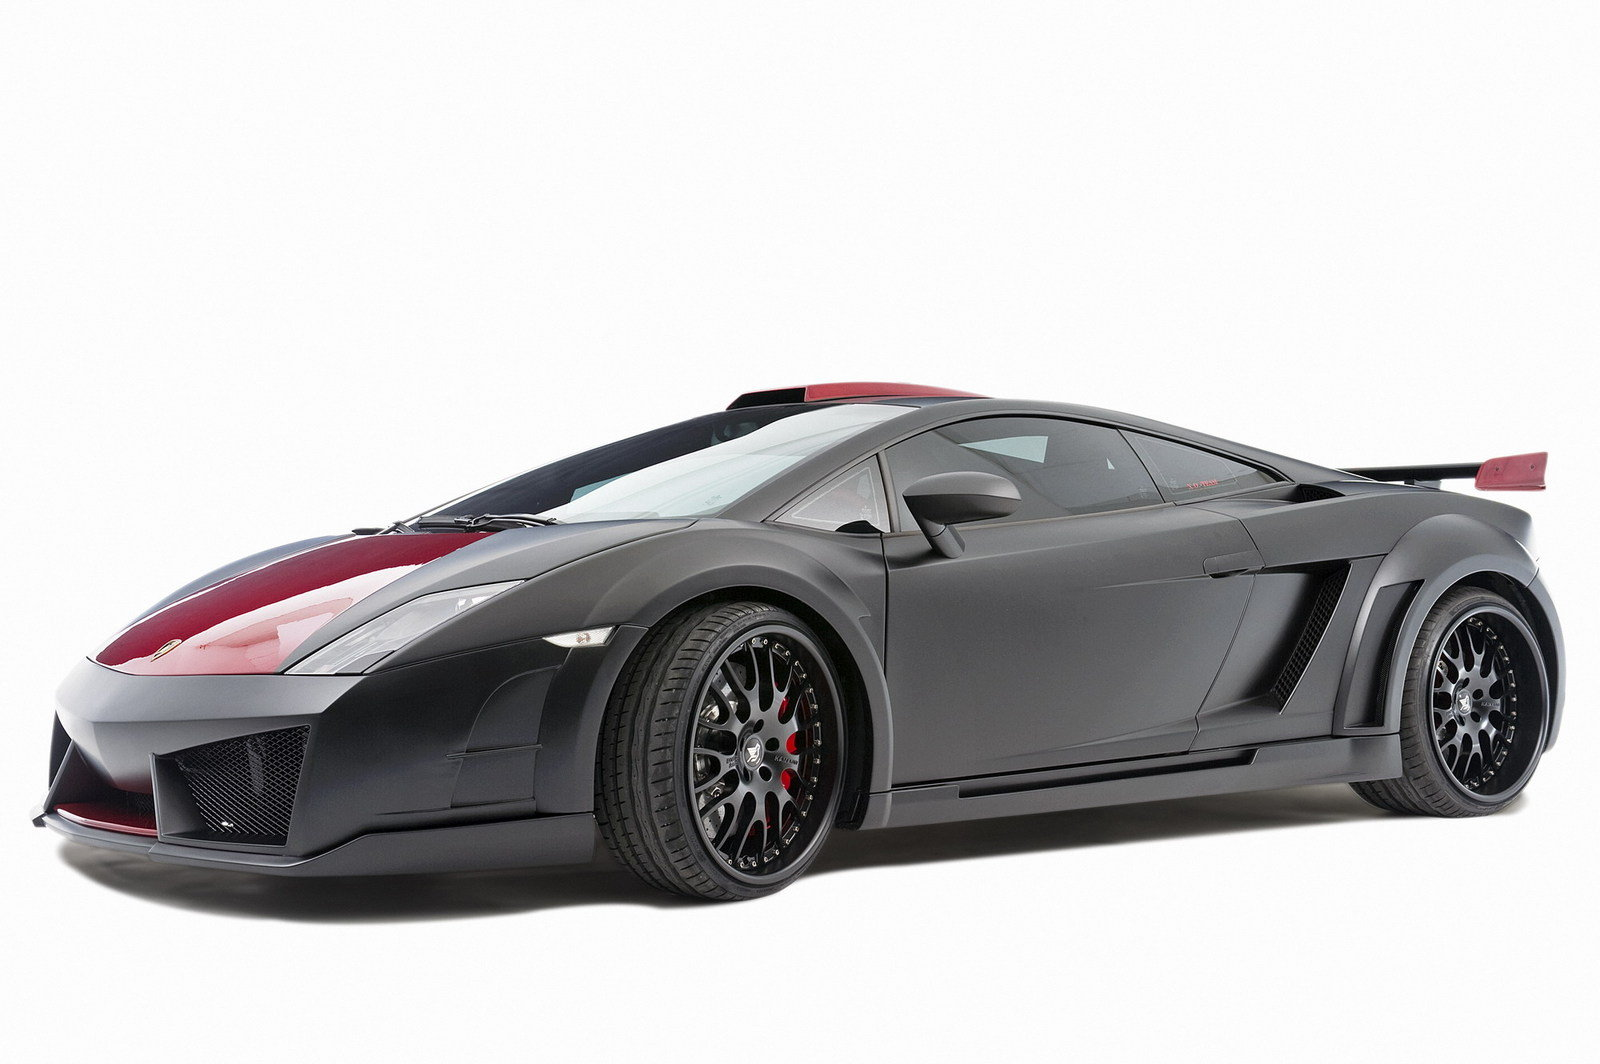 http://pictures.topspeed.com/IMG/crop/201012/hamann-victory-ii-21_1600x0w.jpg